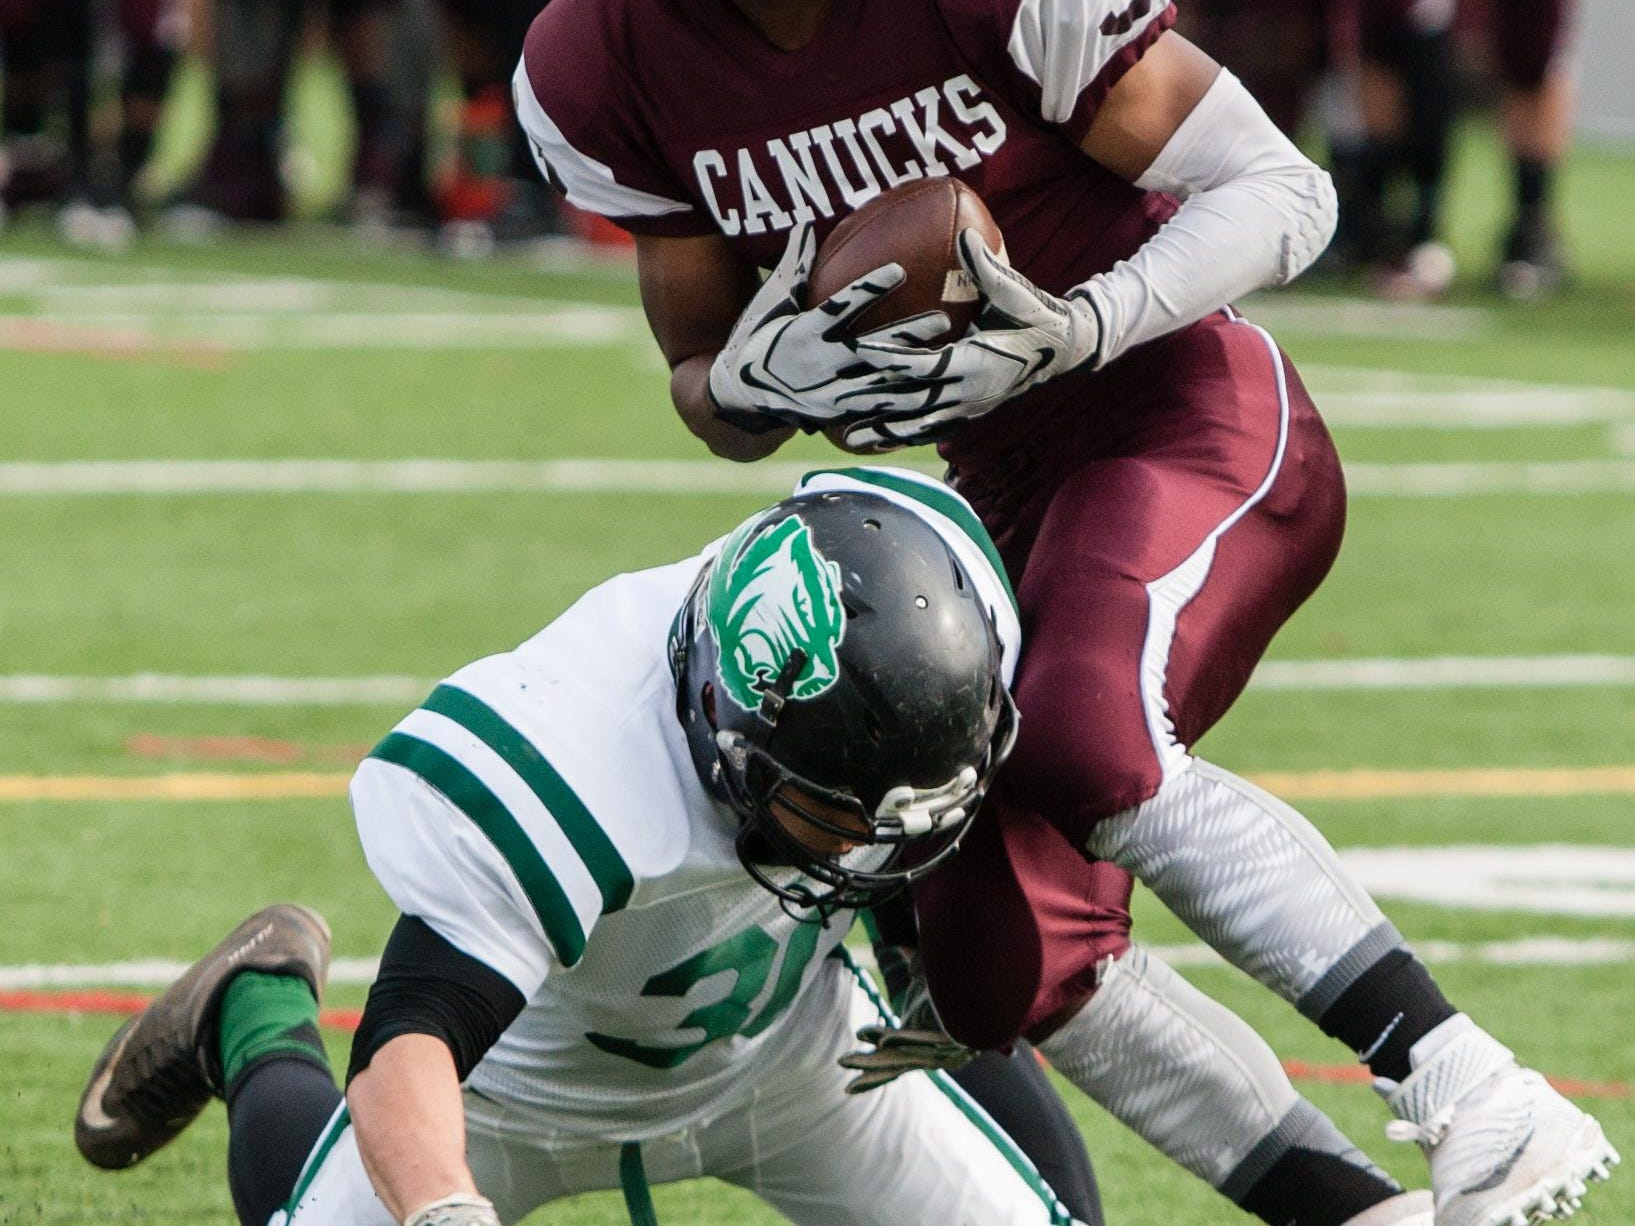 South Plainfield's Benjamin Lundy tackles North Plainfield's Dennis Cooper during their Thanksgiving Day game at Krausche Field in North Plainfield.